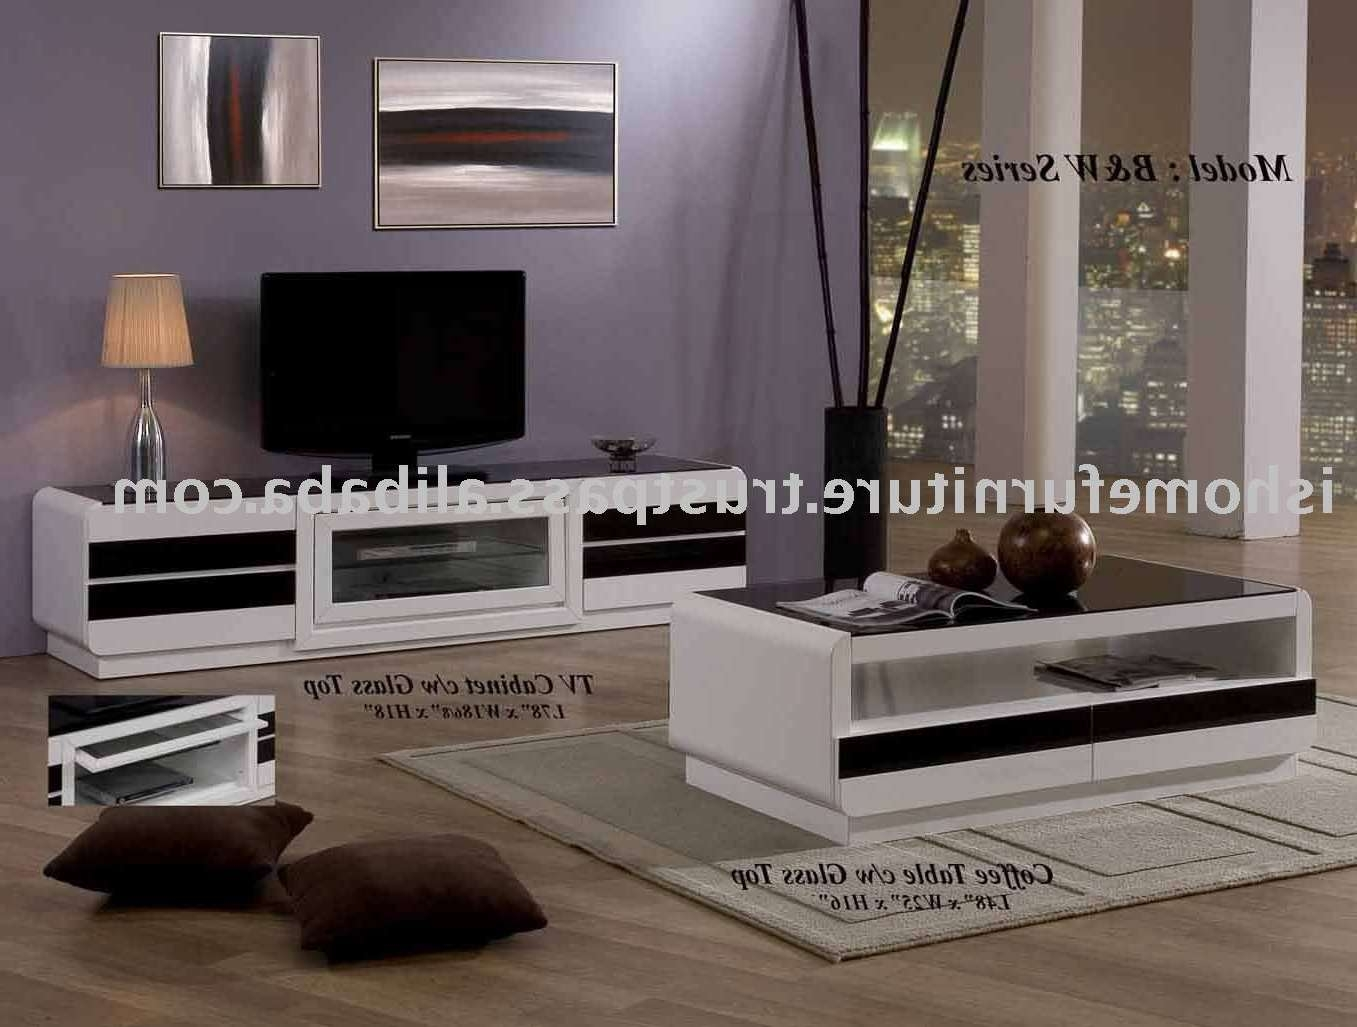 B&w Series – Coffee Table,tv Stand – Buy Home Furniture,coffee Intended For Tv Cabinets And Coffee Table Sets (View 1 of 20)